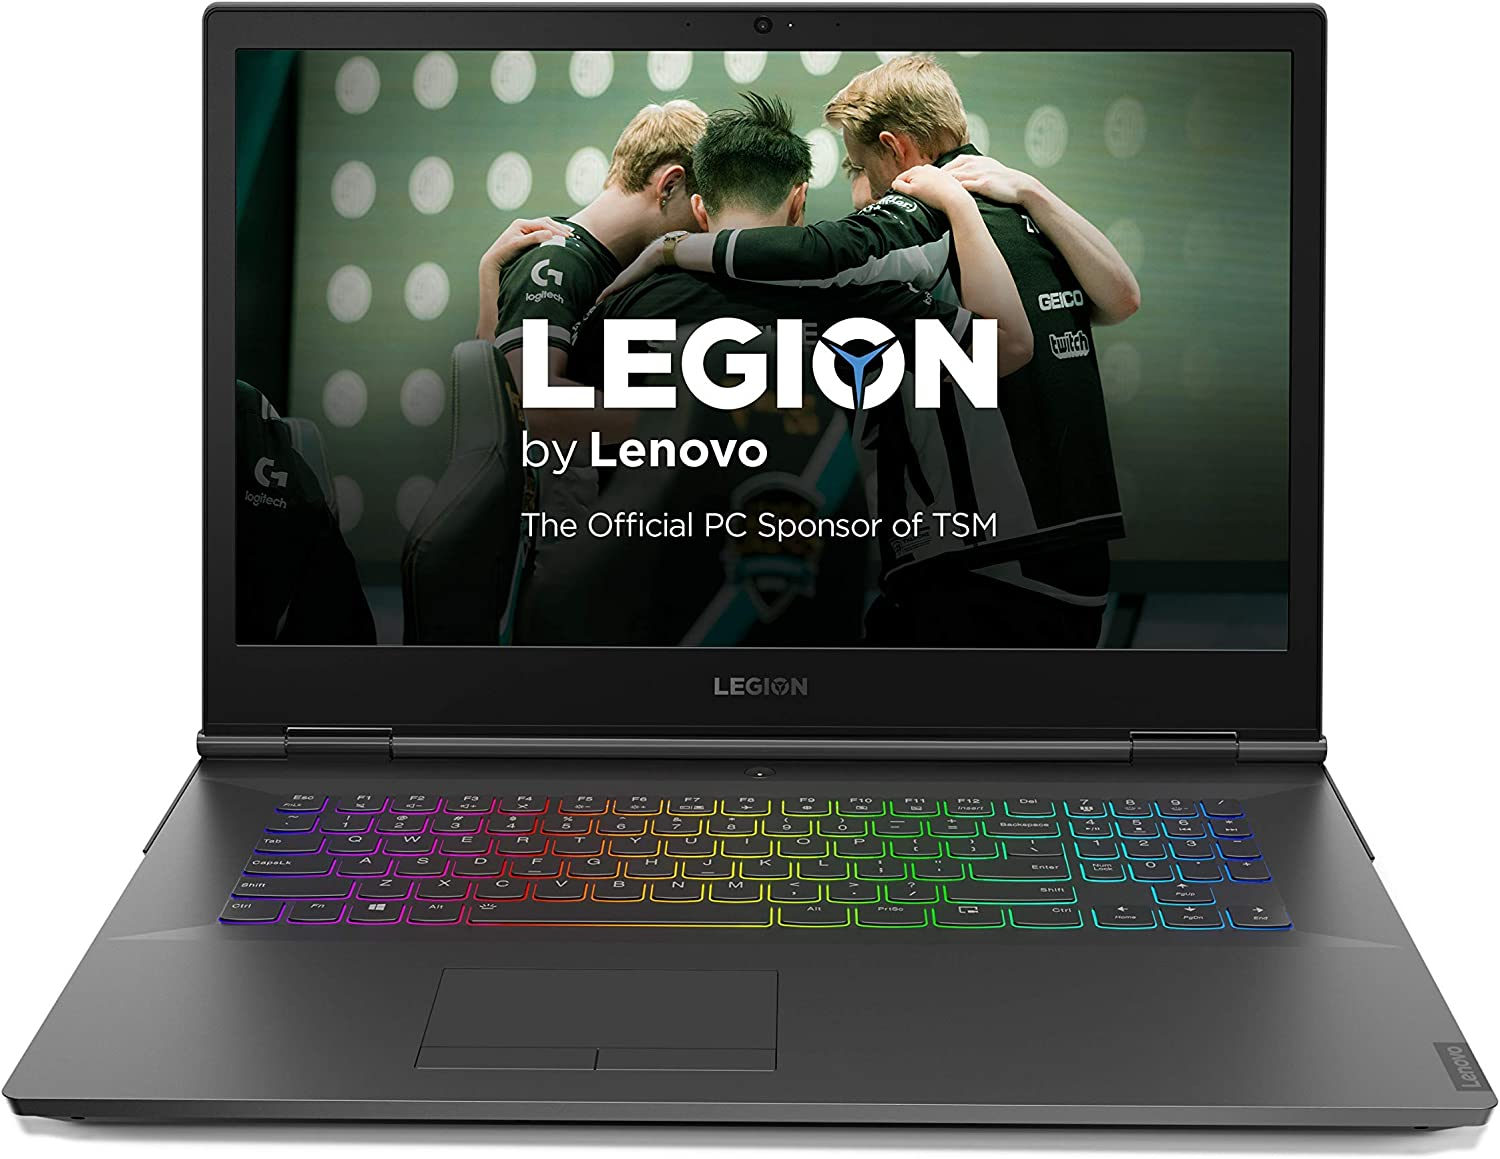 Lenovo Legion Y740 17.3 Inch FHD (1920 X 1080) G-SYNC IPS Display i7-8750H Processor, 16GB DDR4 RAM, 512GB NVMe SSD, NVIDIA GeForce RTX 2080, Windows 10, 81HH0037US, Black (Renewed)